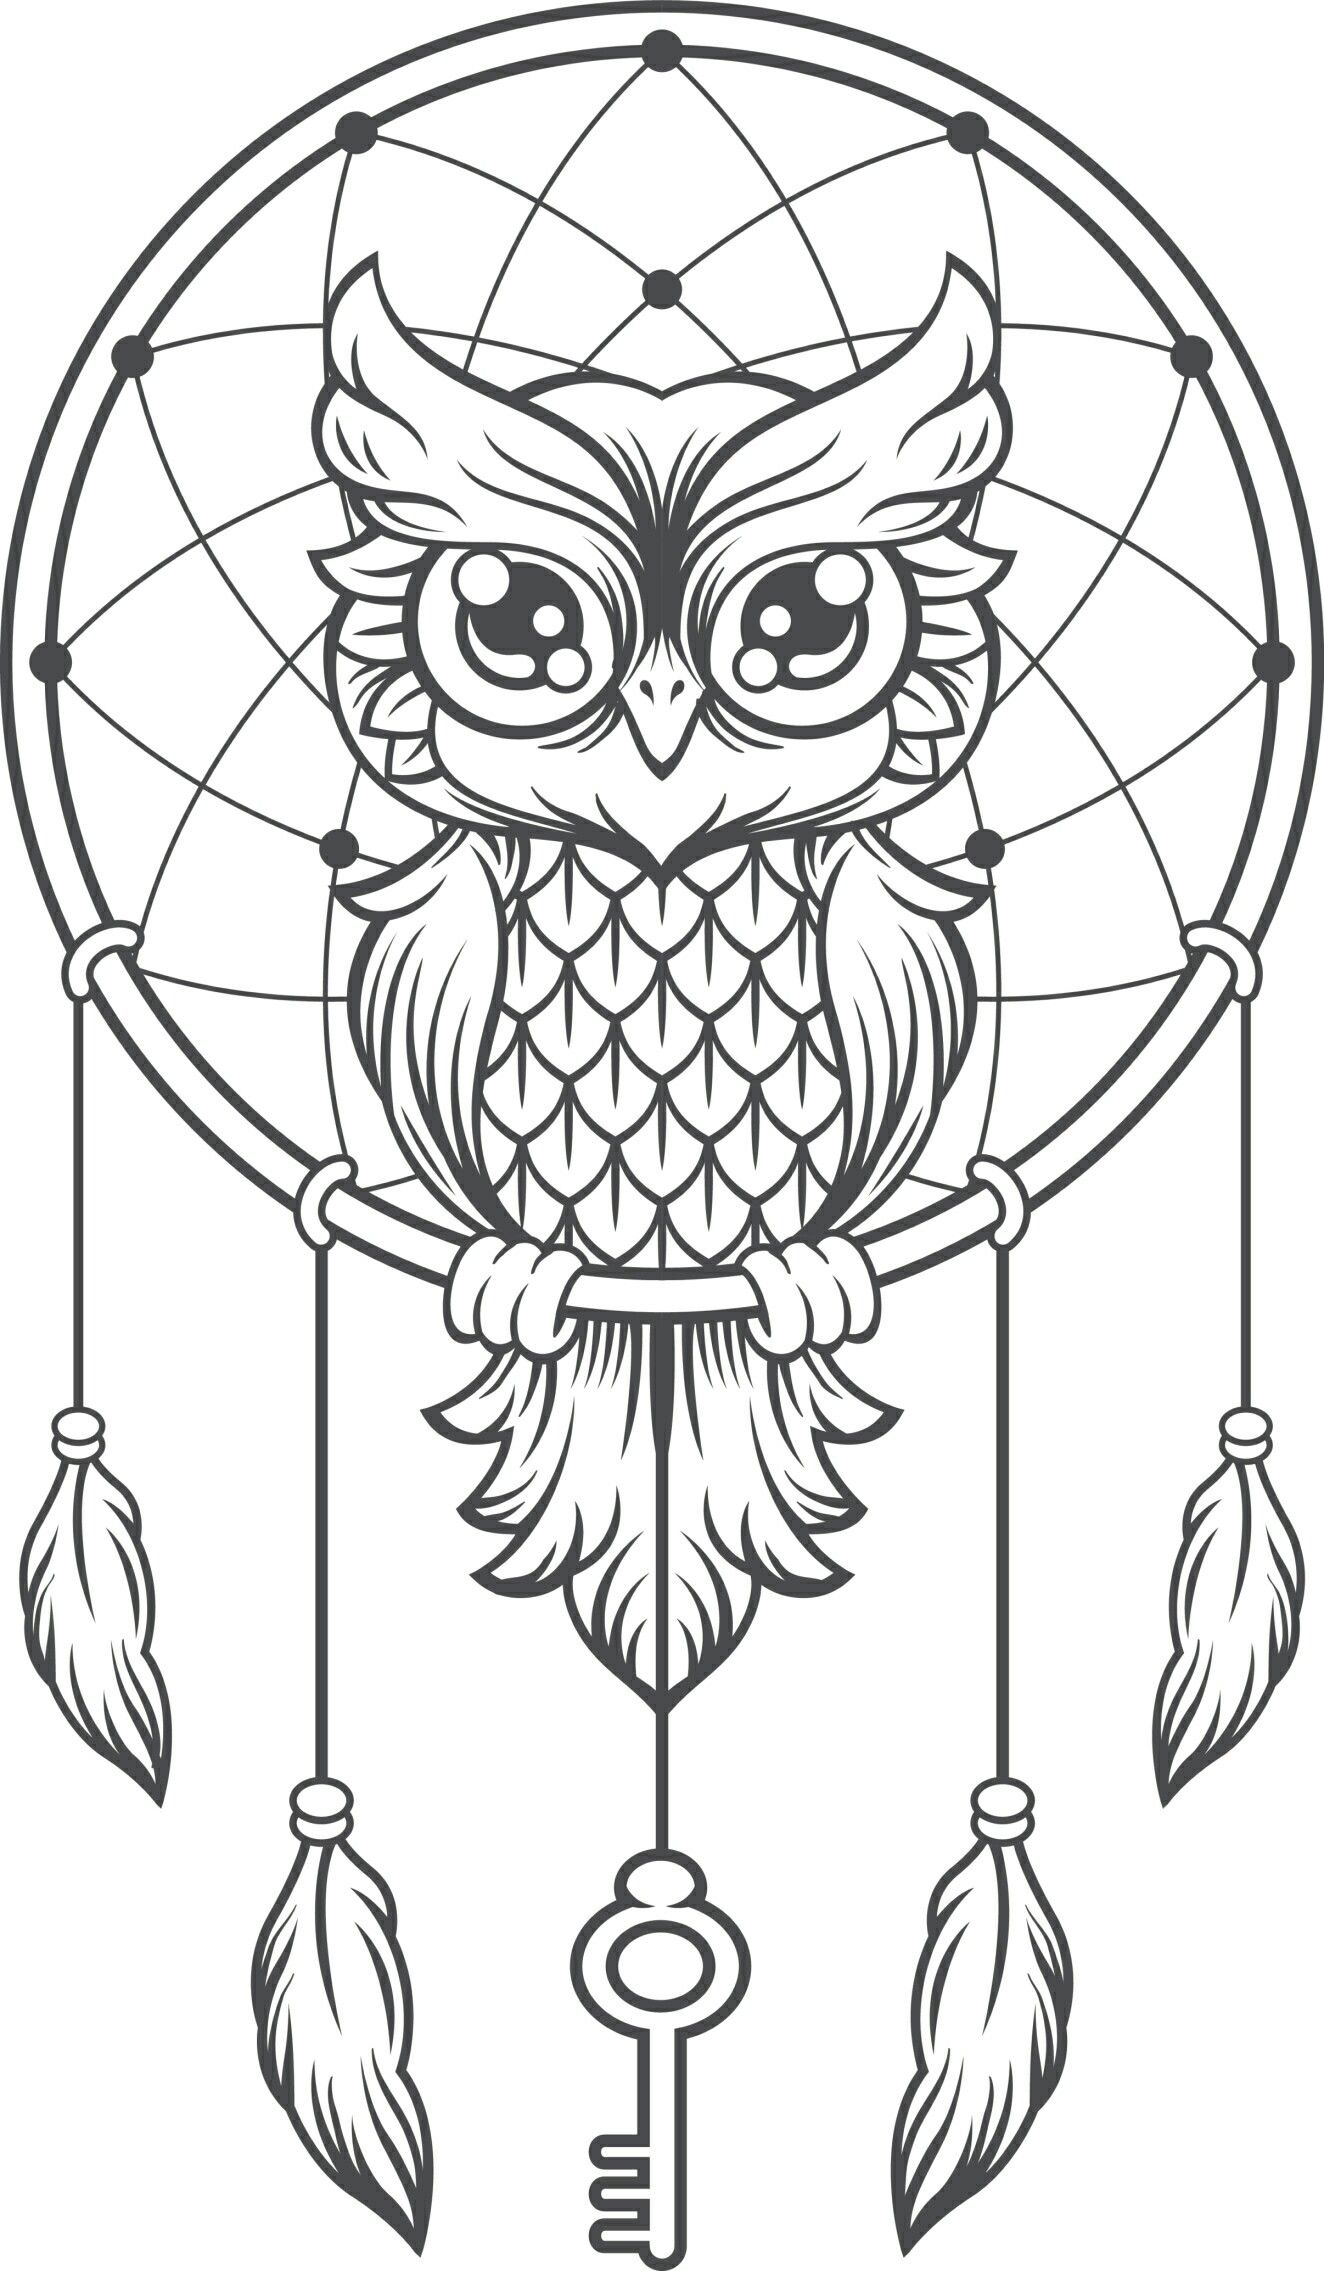 1324x2271 Coloring Pages And Books For Different Holidays Native American